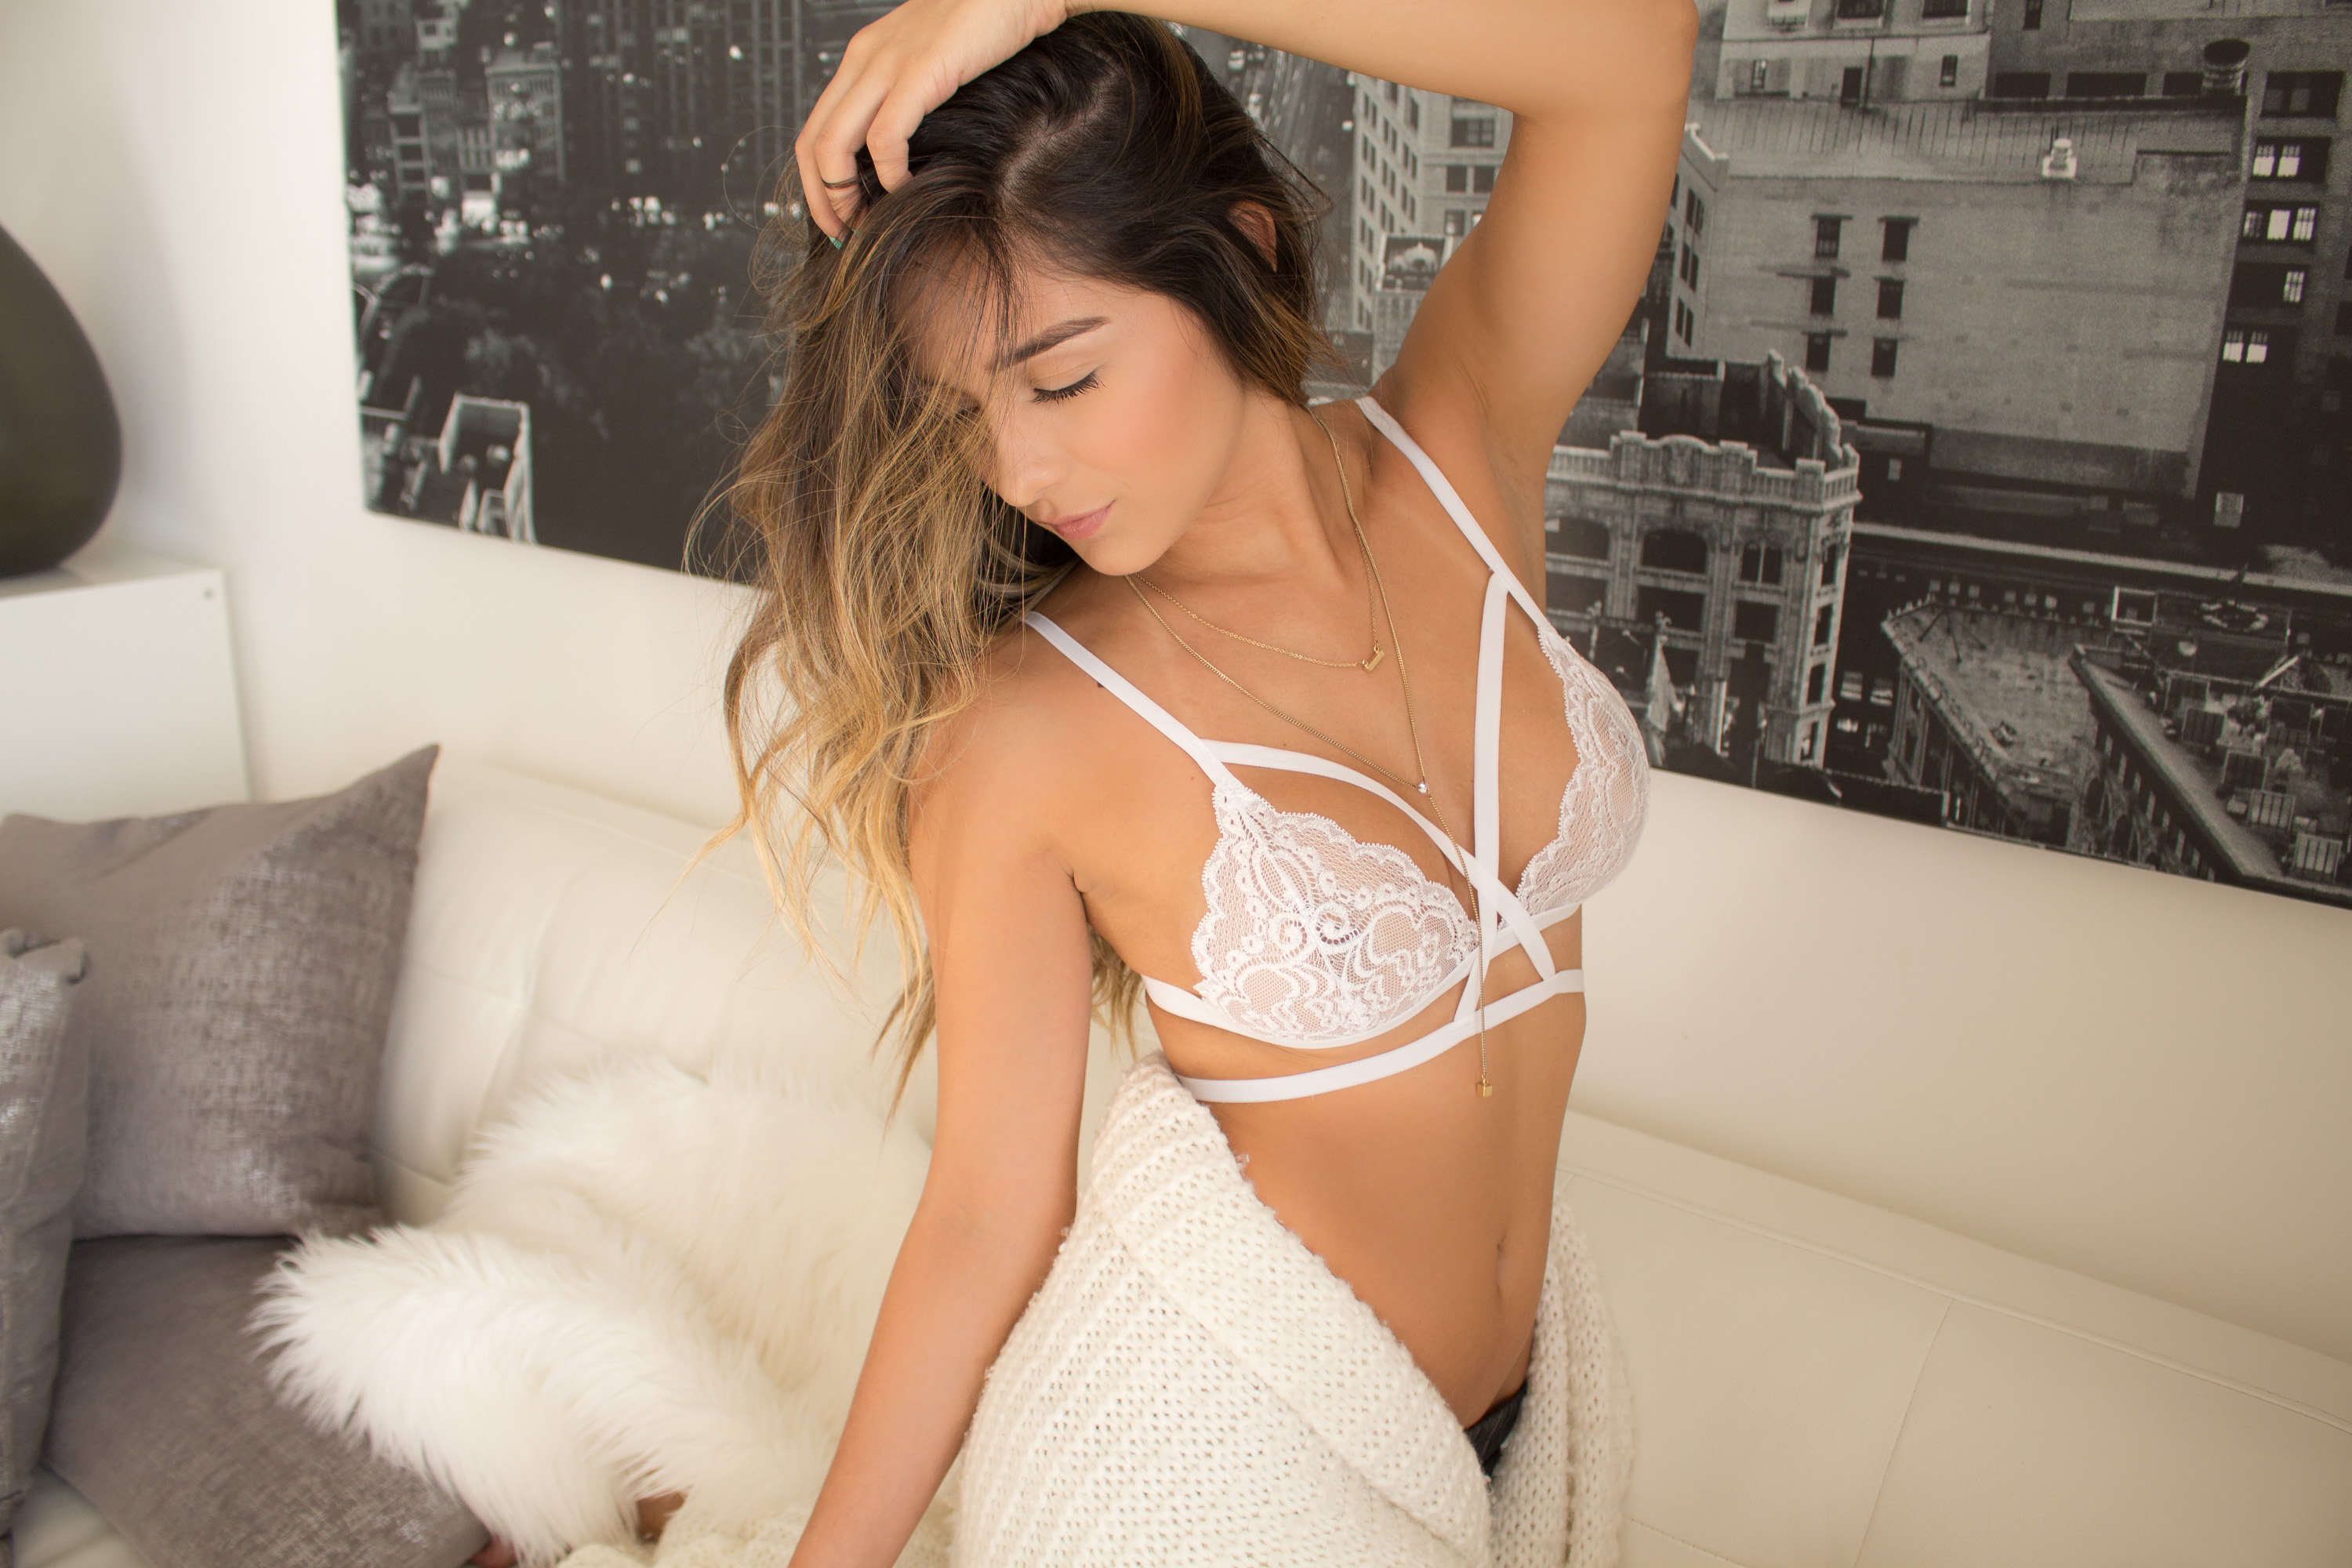 Those White lace sexy lingerie agree